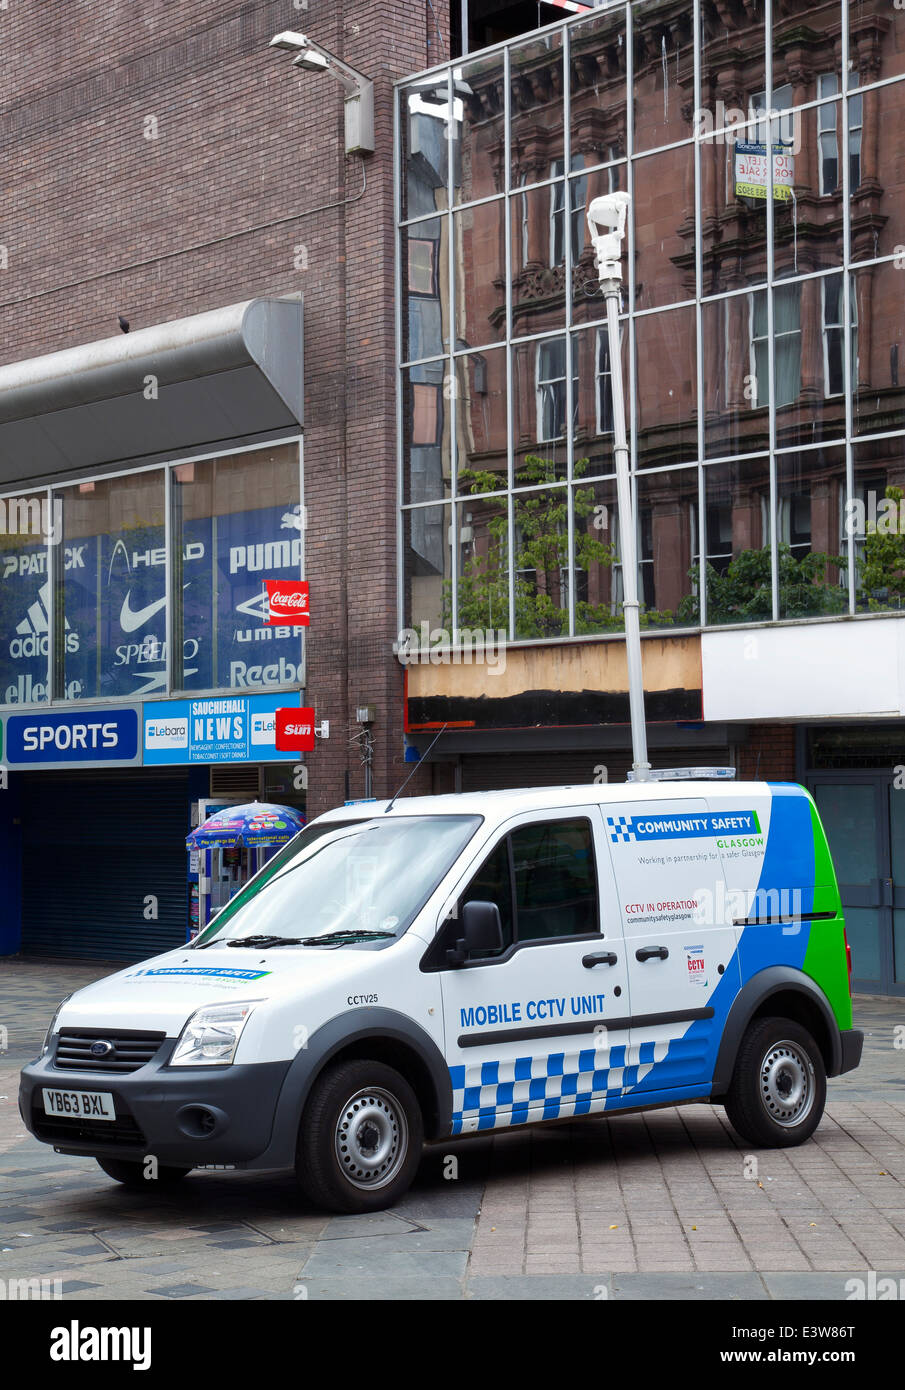 Community Safety Mobile CCTV Unit vehicle, with roof mounted camera, patrolling Sauchiehall Street, Glasgow, Scotland - Stock Image